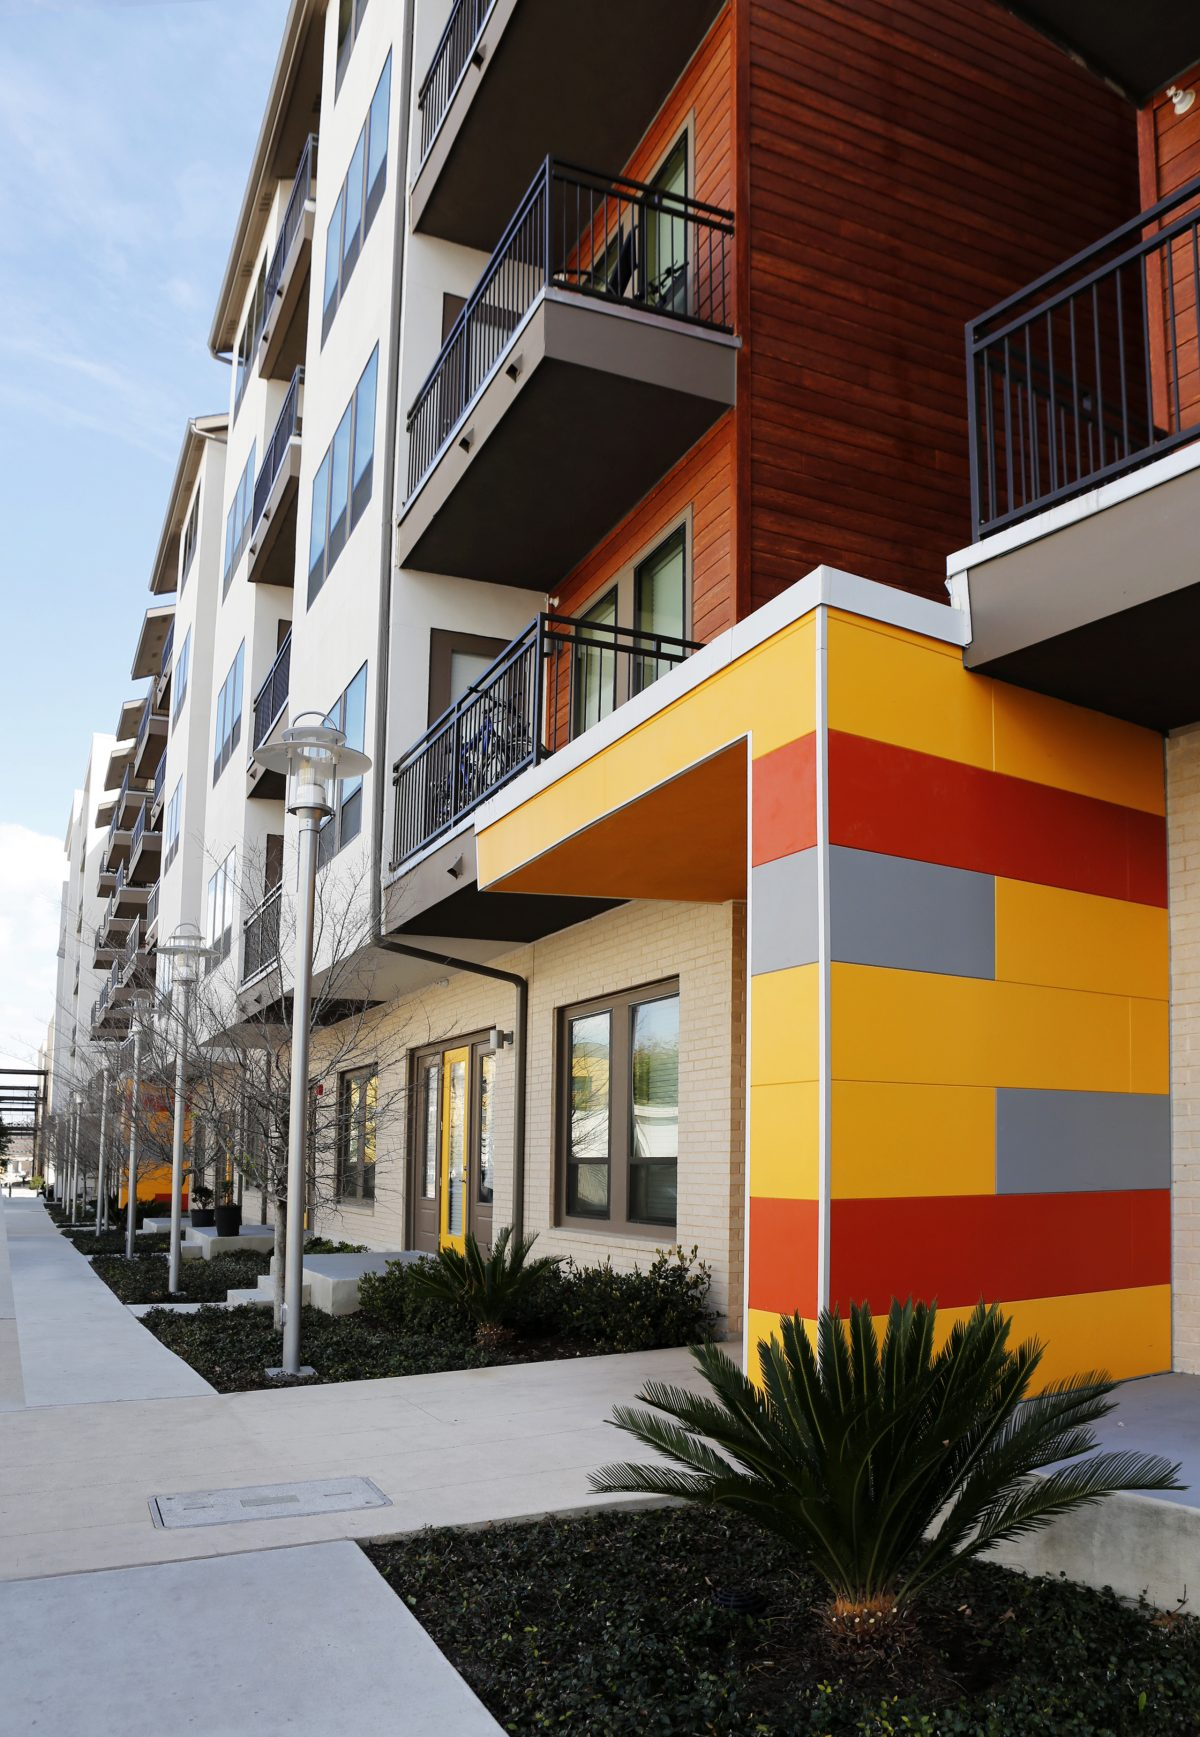 What Are The Risks That Can Come With Investing In Multifamily Rental Properties?